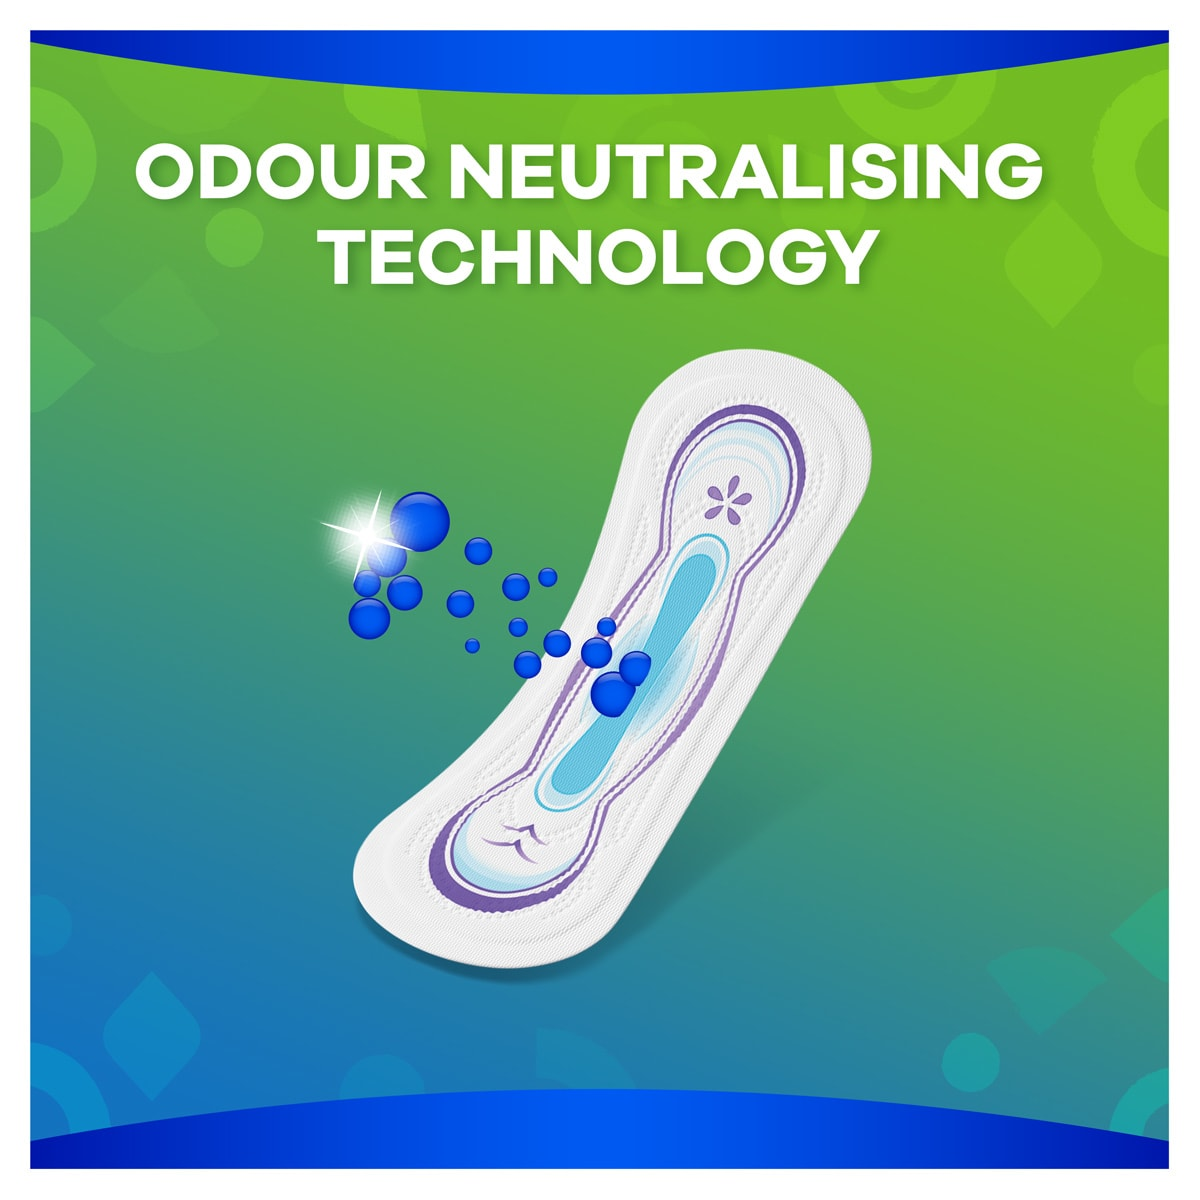 Odor neutralising technology